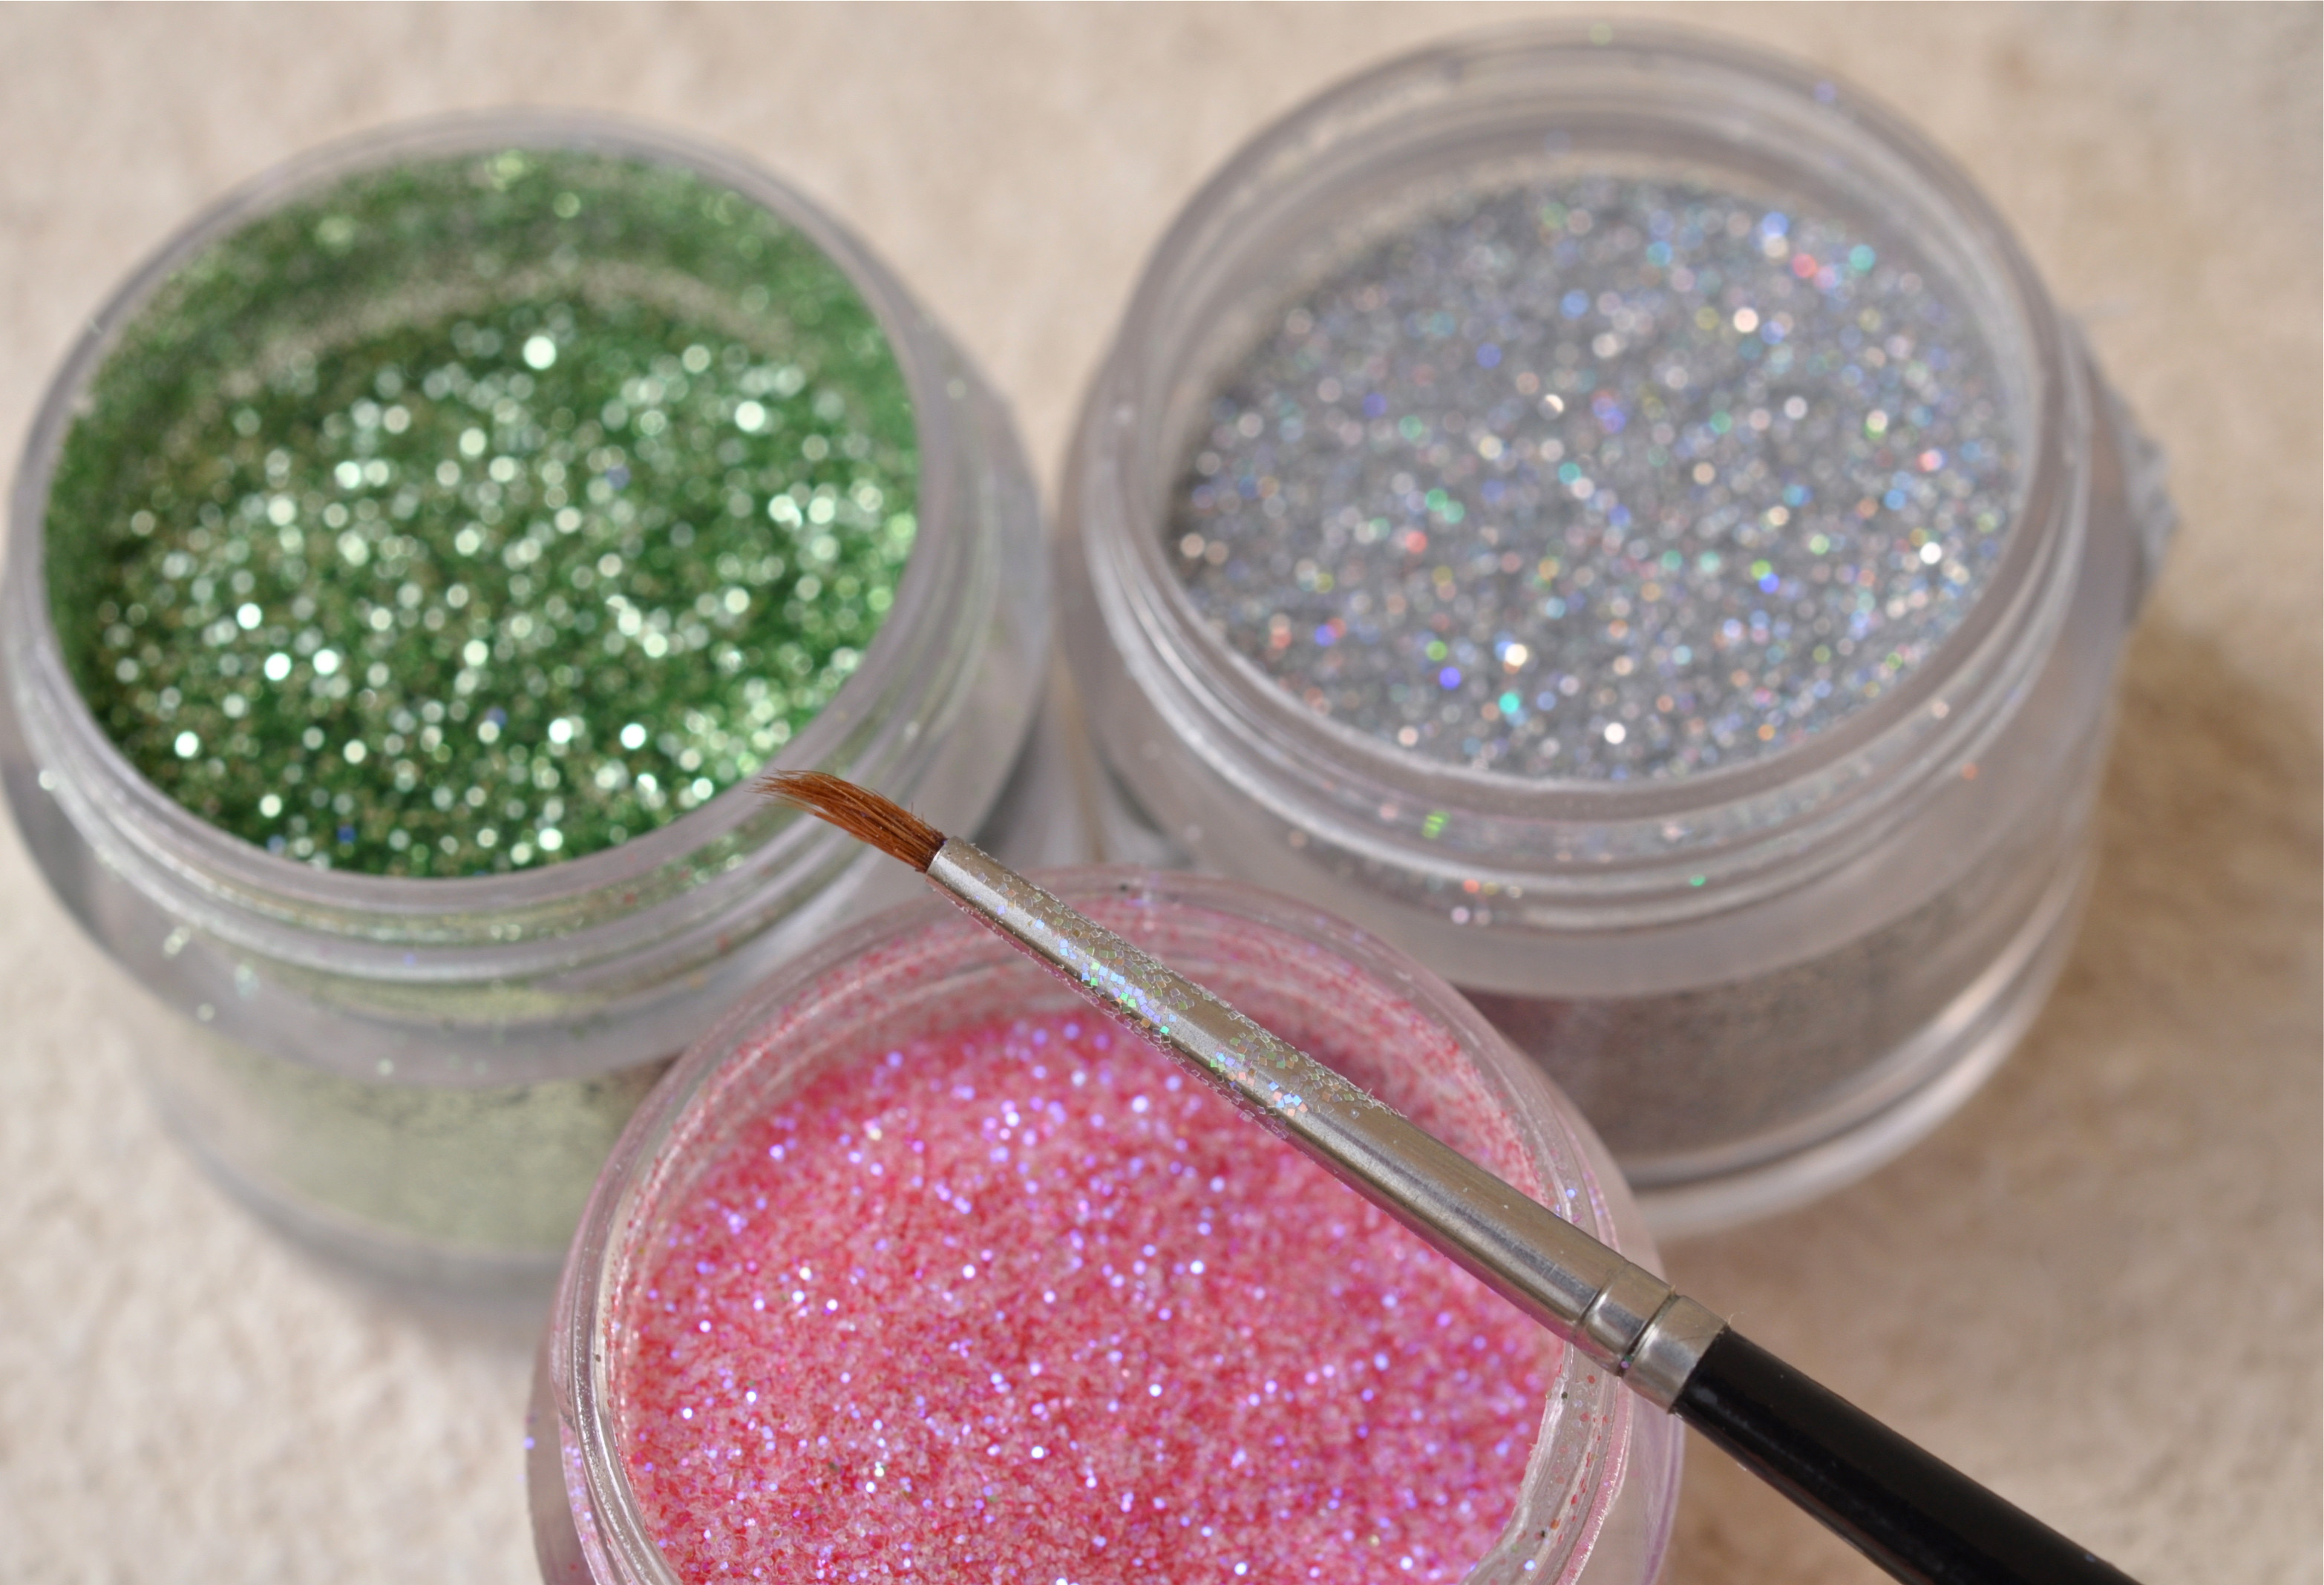 Best ideas about Edible Glitter DIY . Save or Pin DIY Edible Sparkly Glitter in 5 Easy Steps Home Trends Now.